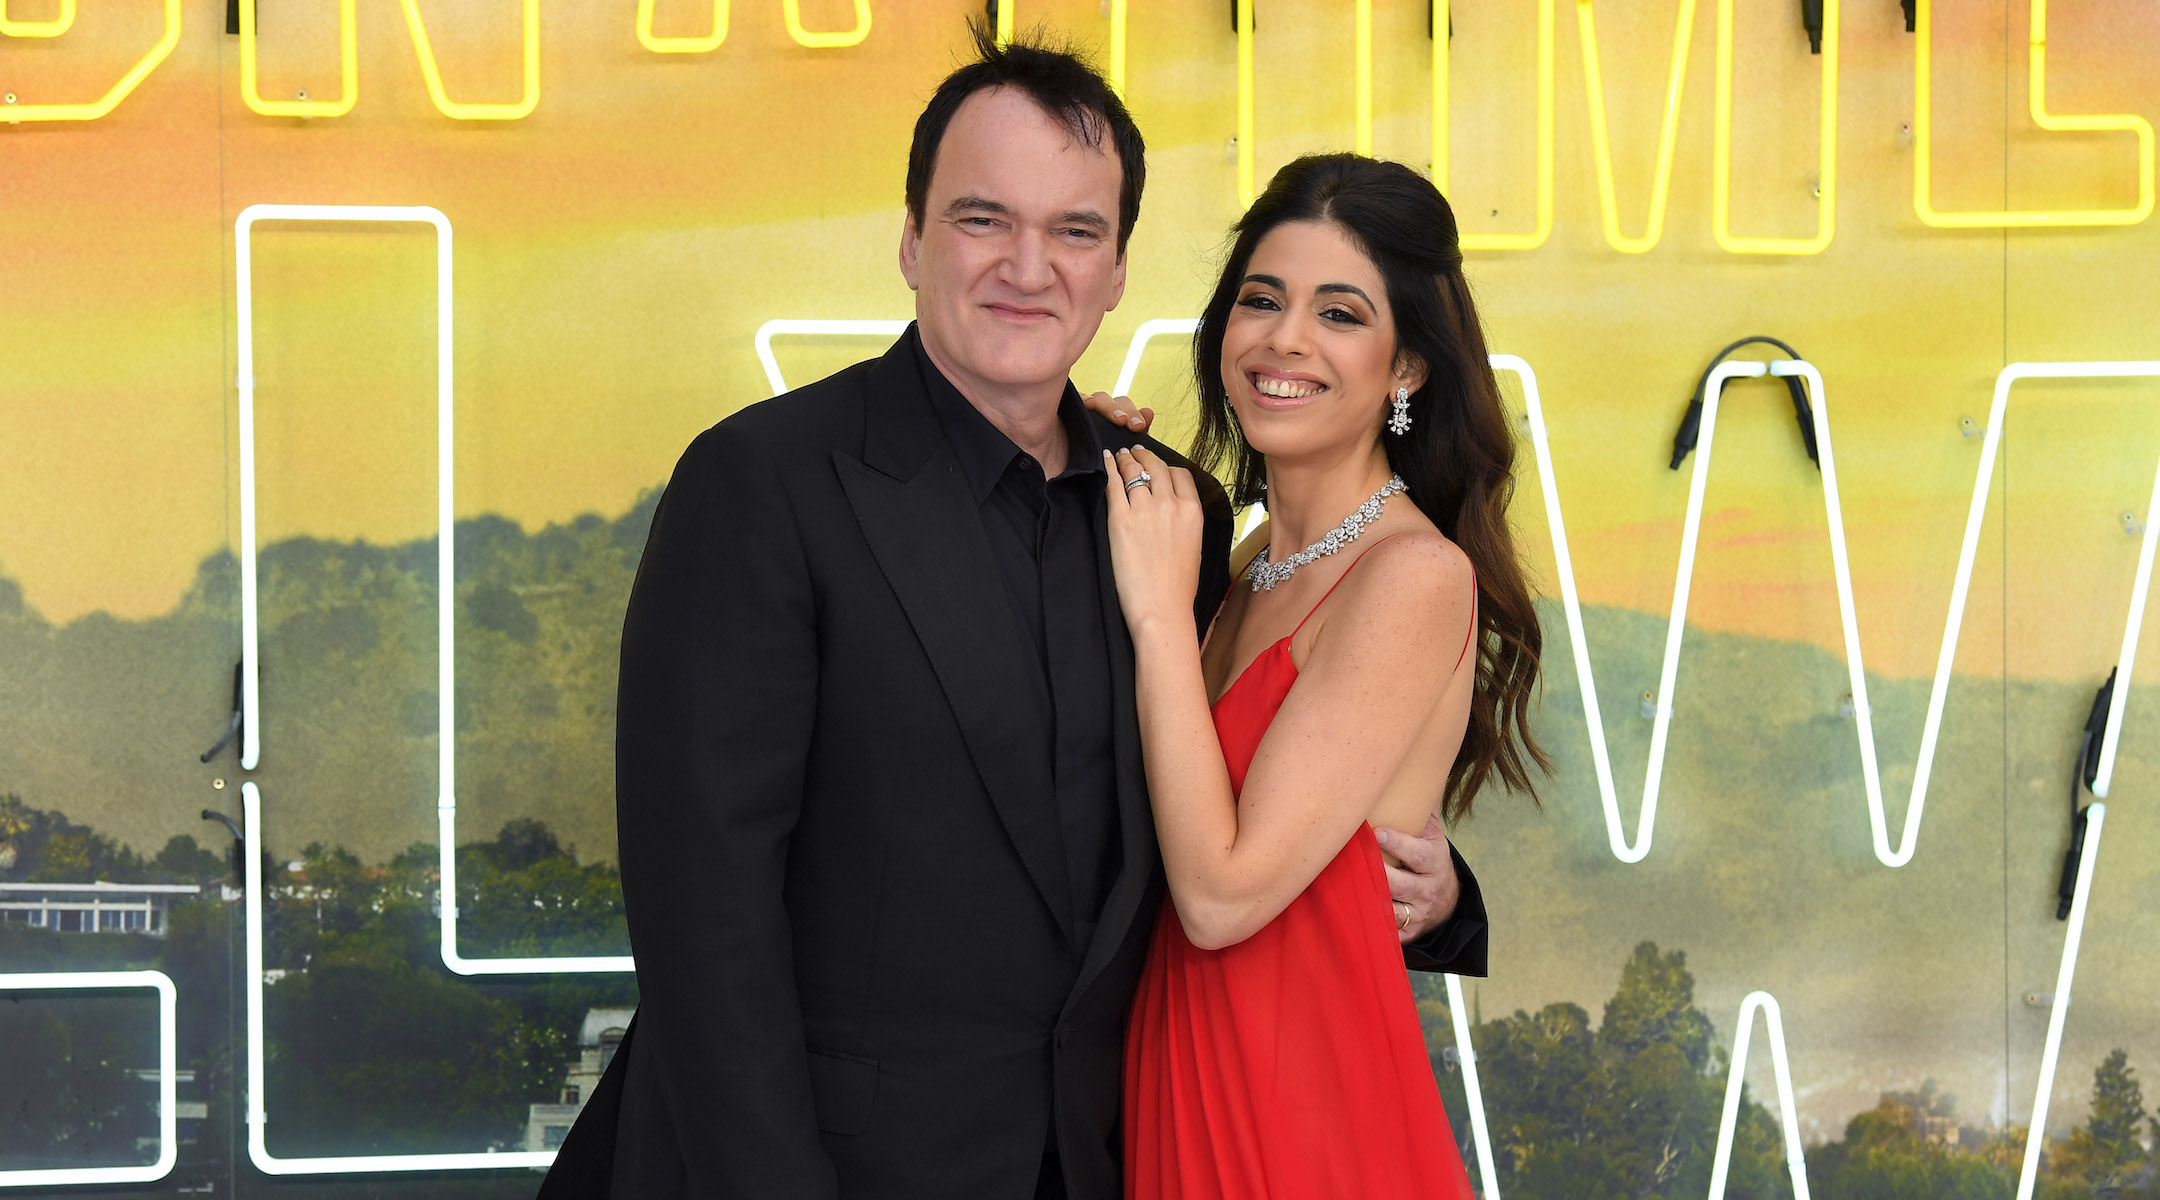 Quentin Tarantino and wife welcome first child